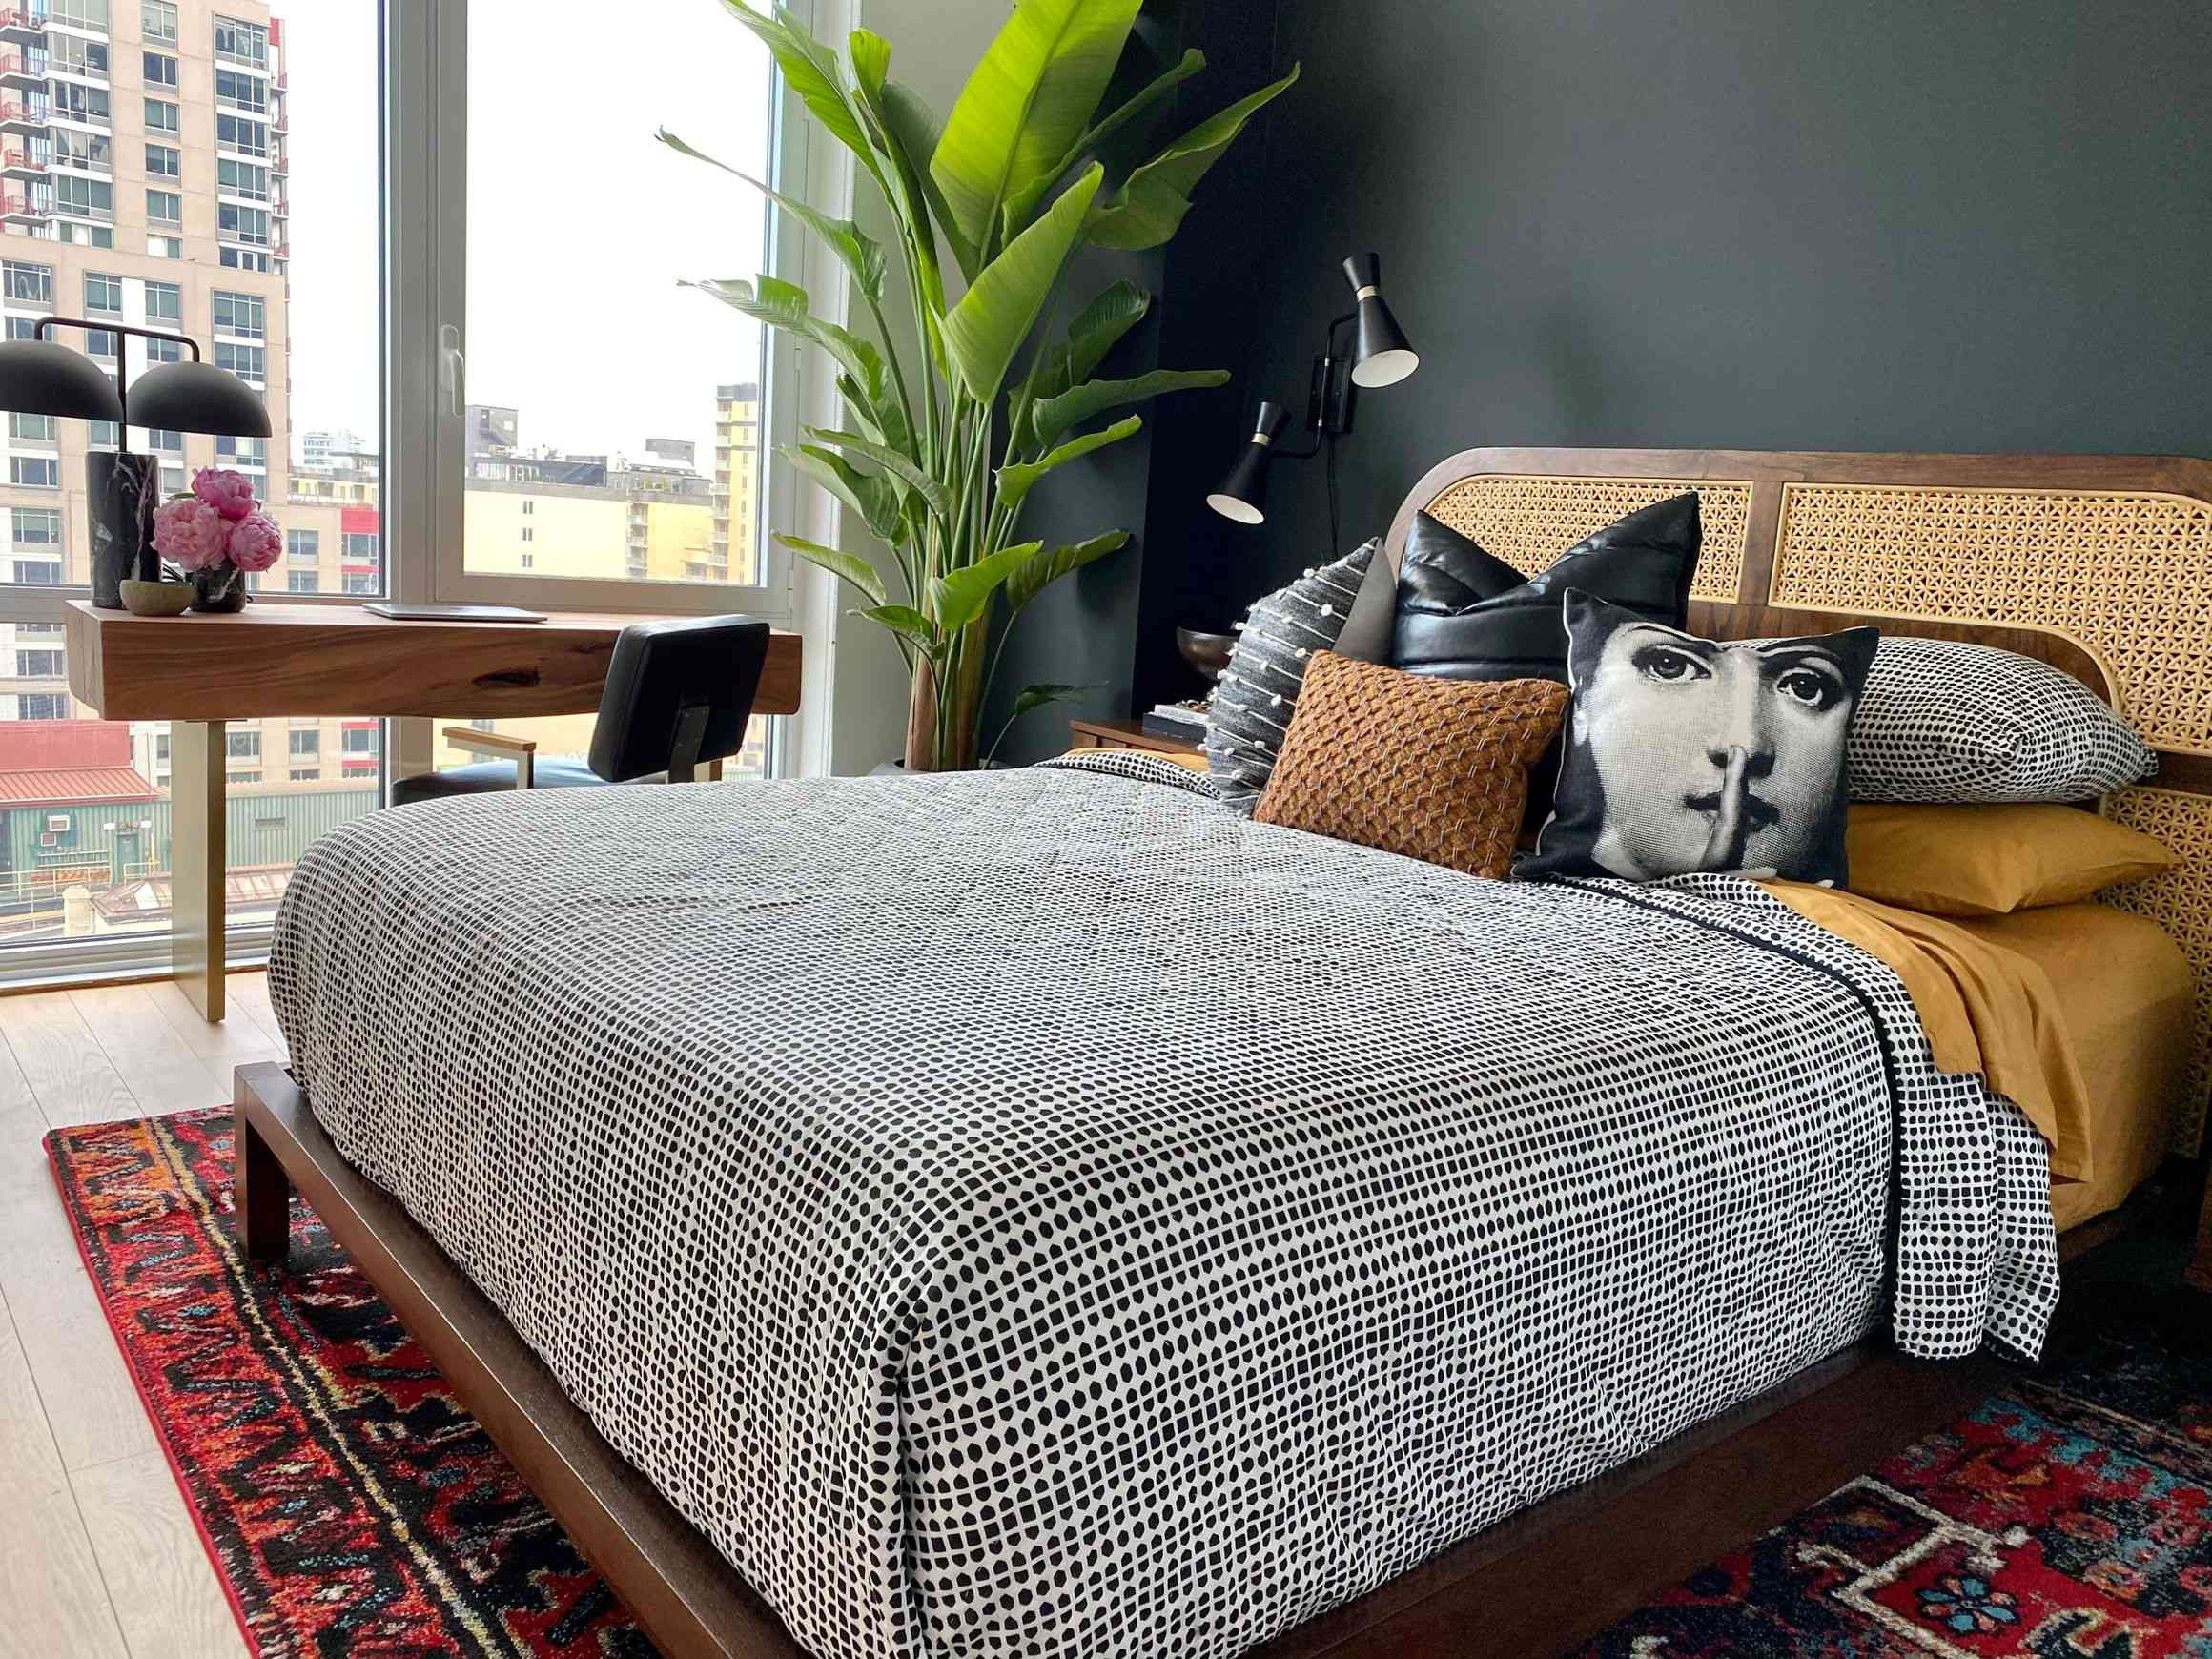 brown and black modern bedroom with large plant, various style pillows, eclectic rug